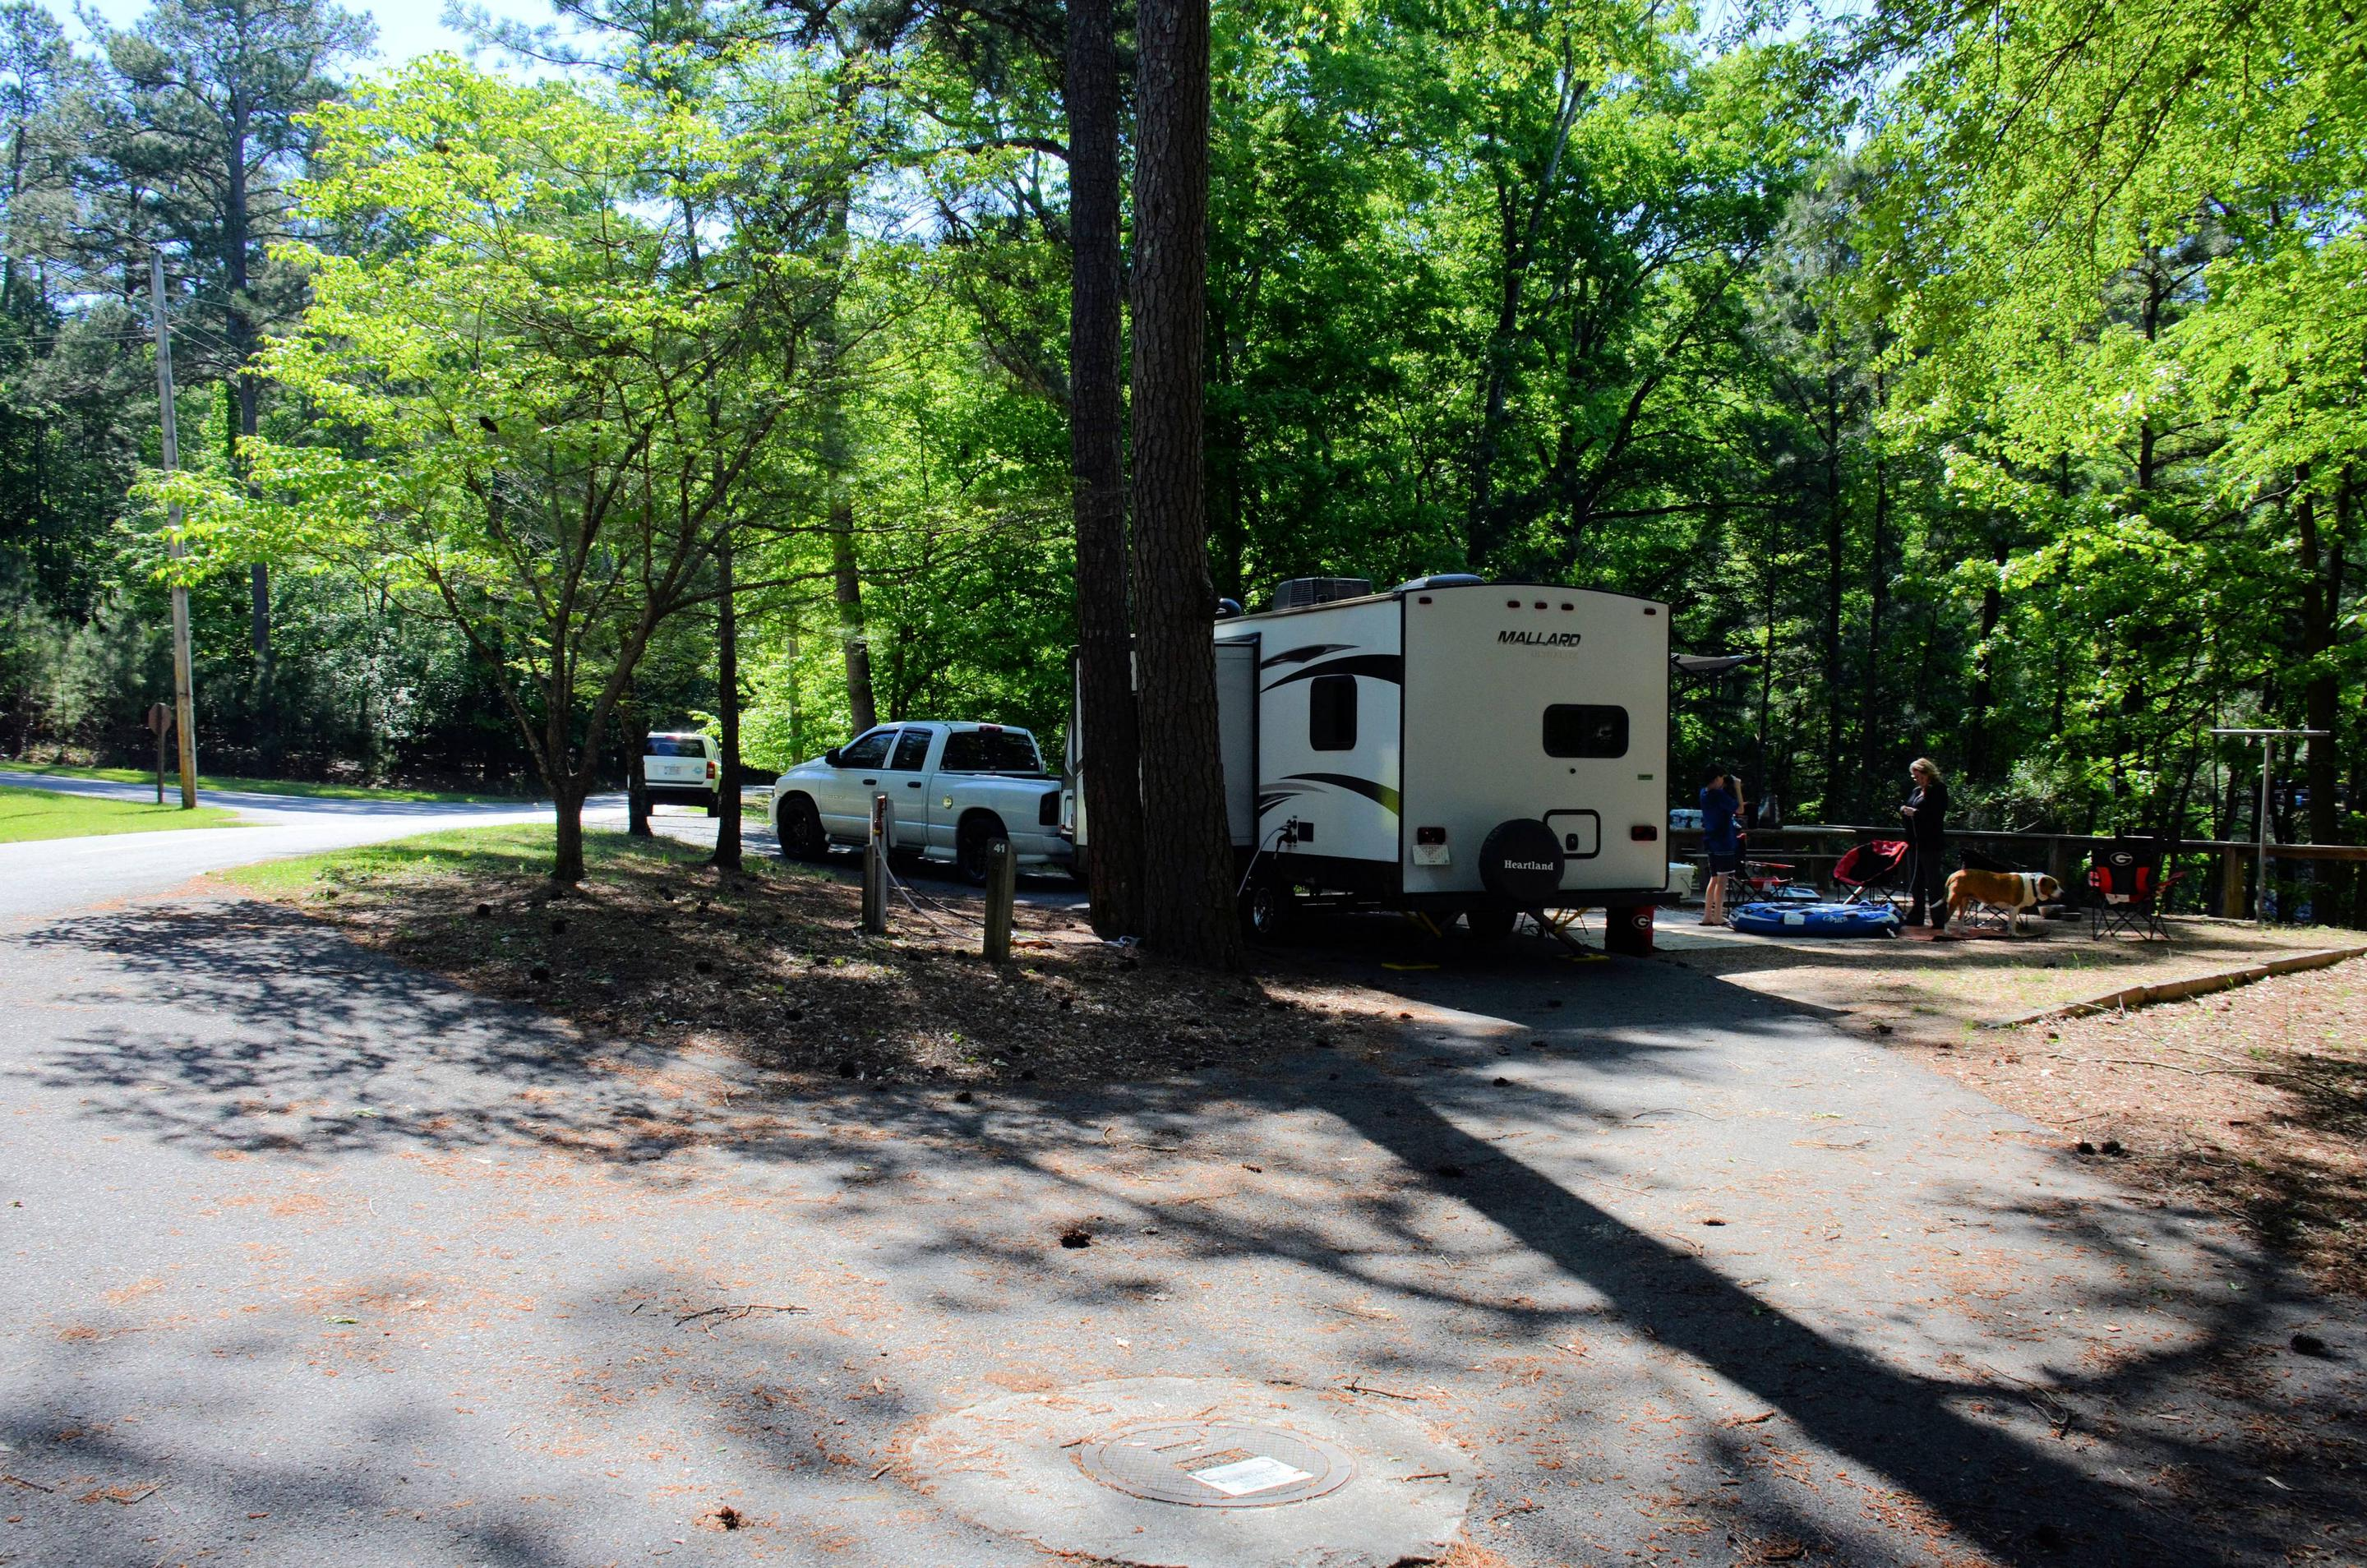 Pull-thru entrance, driveway slope, utilities-side clearance.McKinney Campground, campsite 41